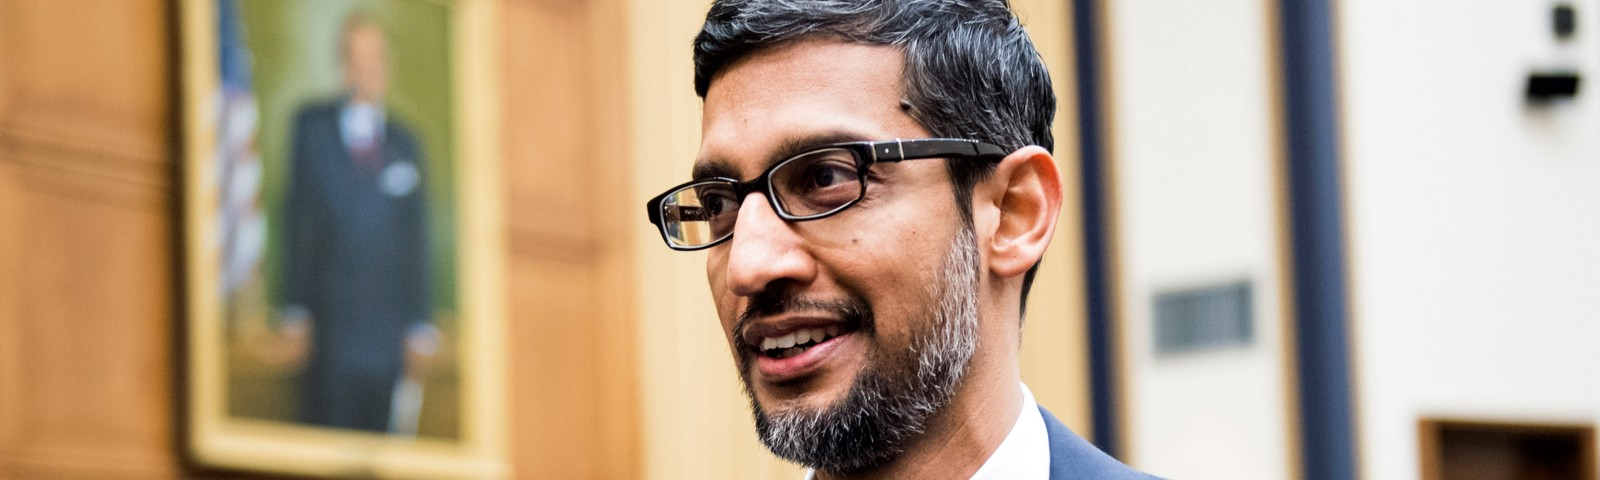 Google CEO Refutes Claims of Bias, Data Tracking in Congress